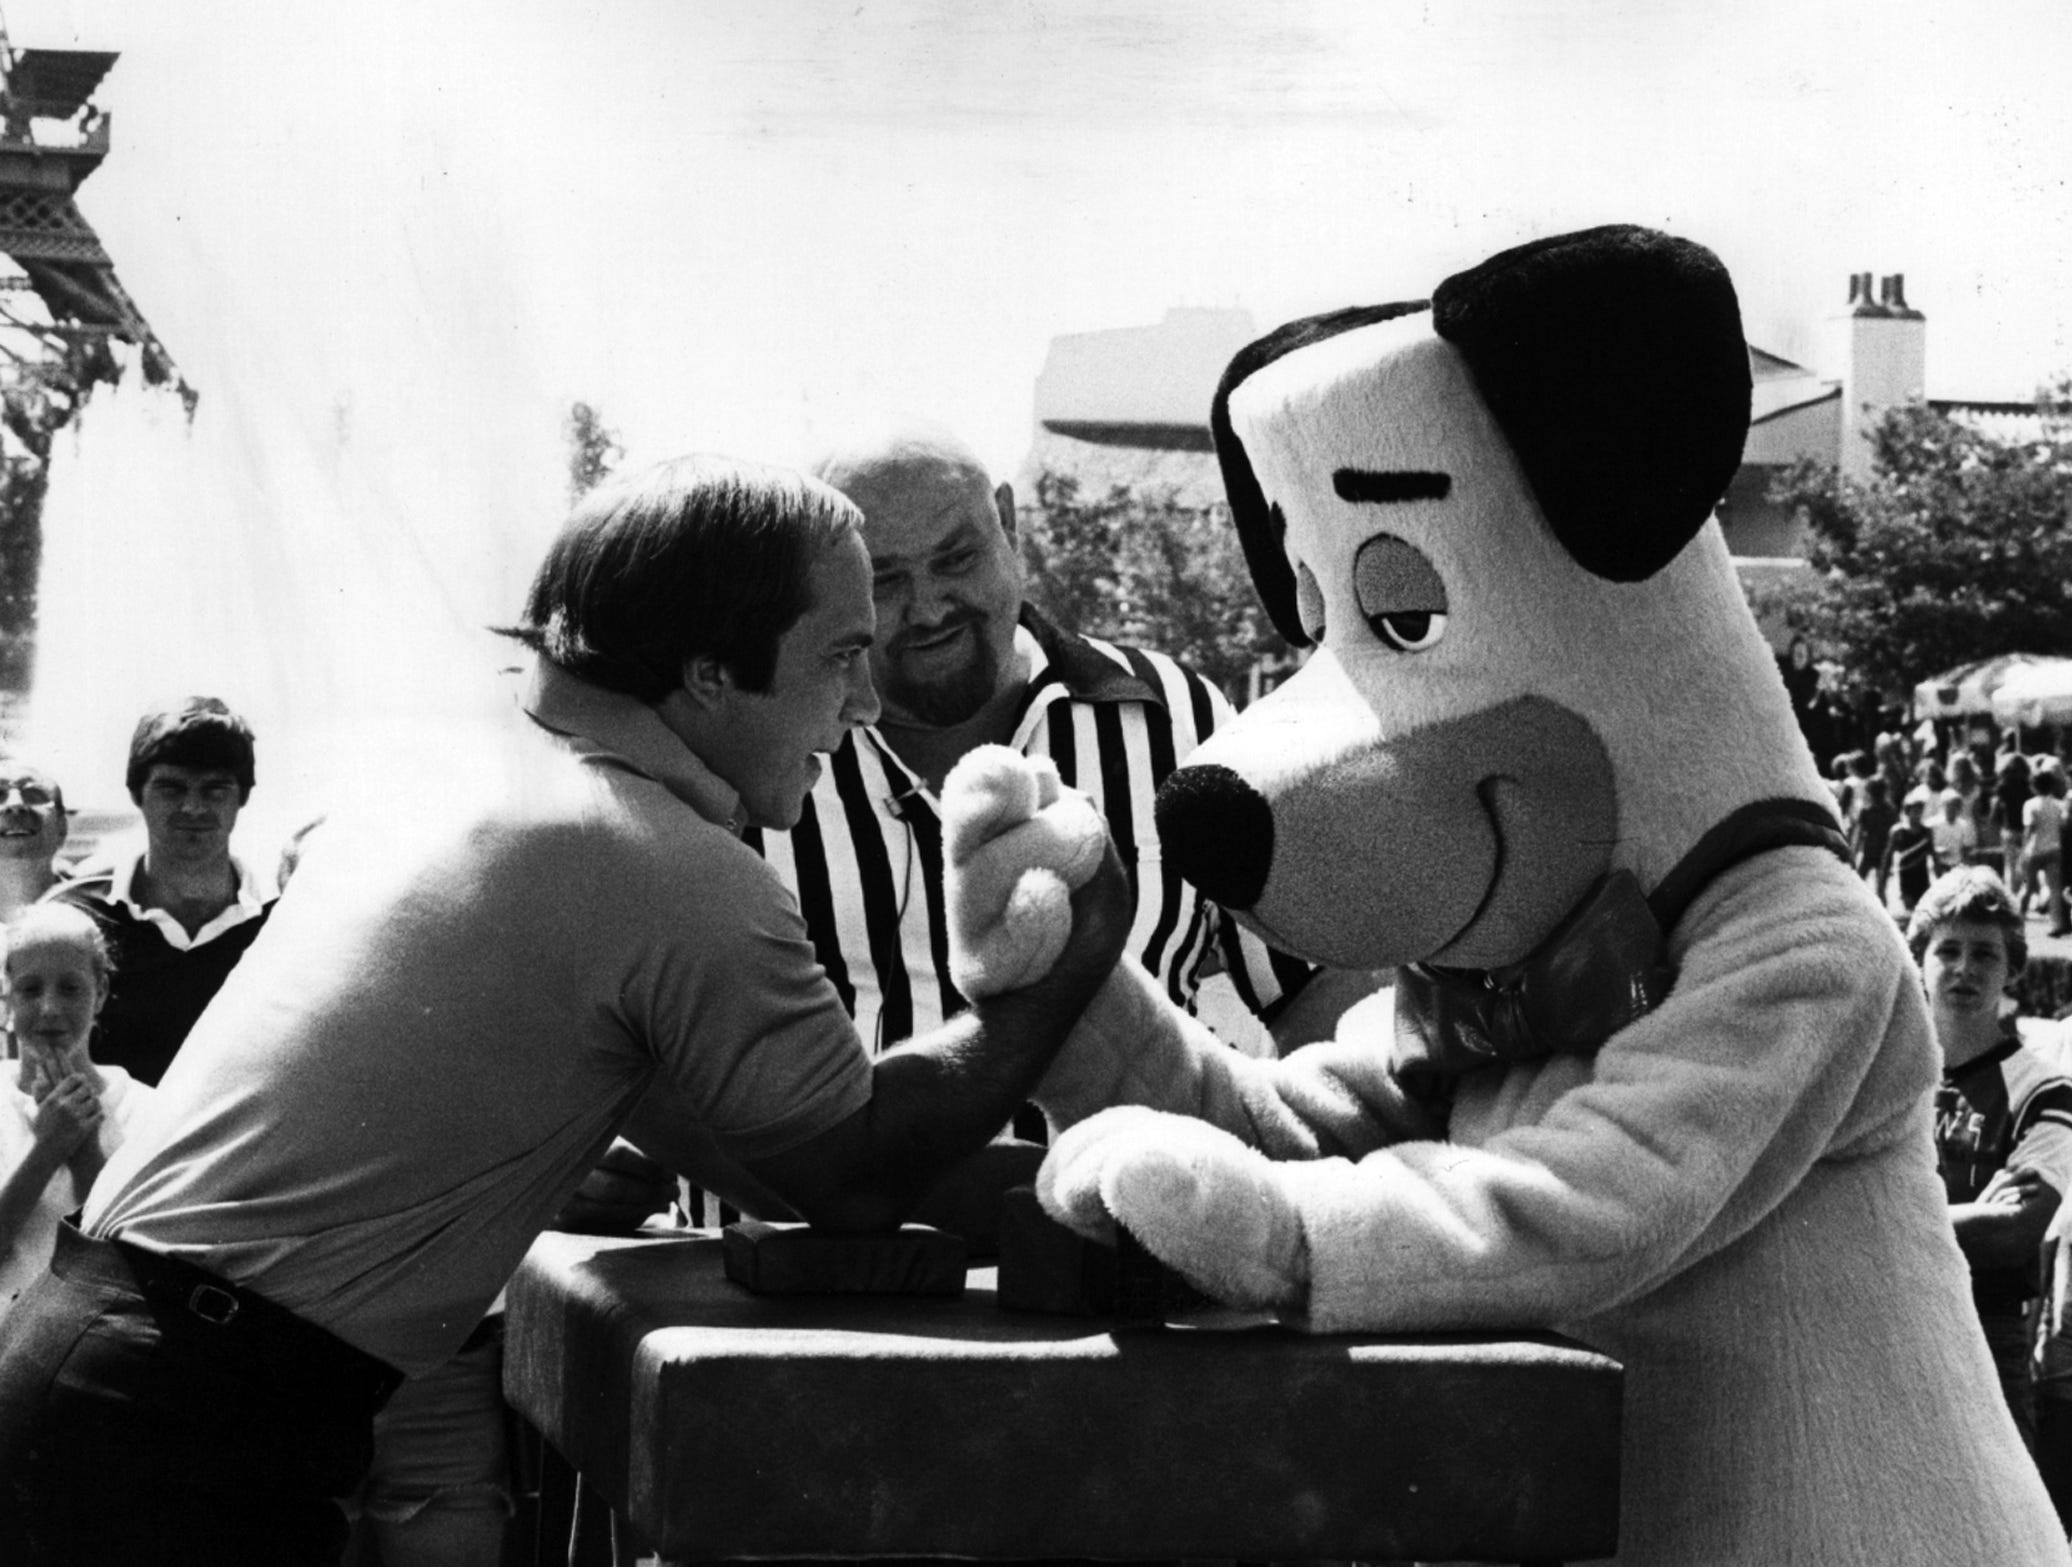 """AUGUST 29, 1980: Bench Bested: Co-host Johnny Bench, Cincinnati Reds superstar catcher, appears to have met his match at arm-wrestling when challenged by one of the many """"animal"""" mascots at Ohio's Kings Island Amusement Park during taping of segments to be presented on NBC-TV's new sports/variety series, """"Games People Play,"""" Thursday, Sept. 11 and 18 (8-9 p.m. NYT). Photo credit: NBC Photo scanned August 8, 2013"""